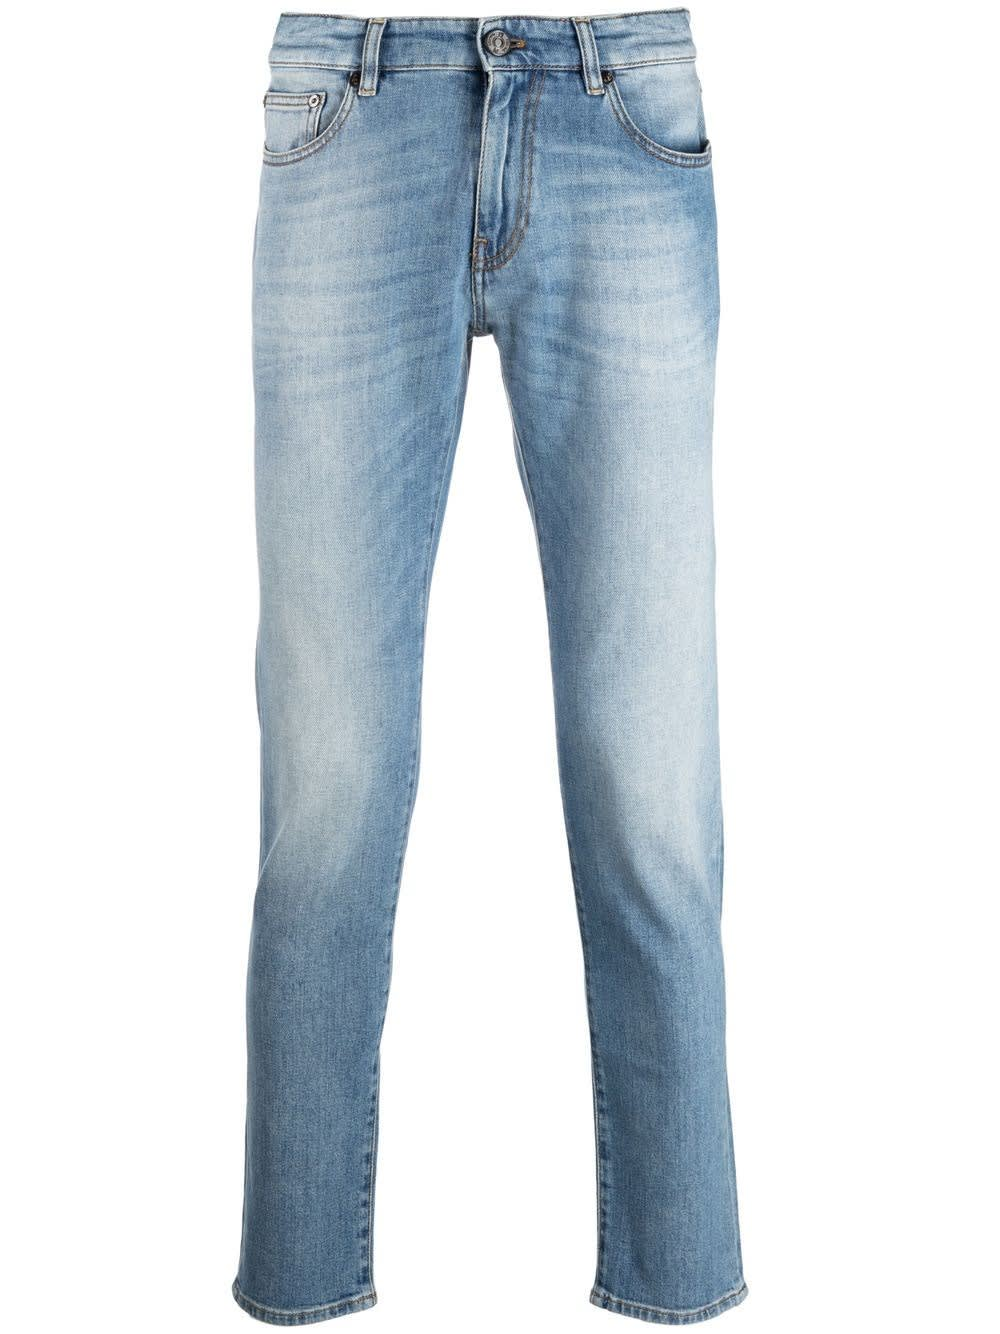 Pt01 Denims JEANS ROCK IN DENIM